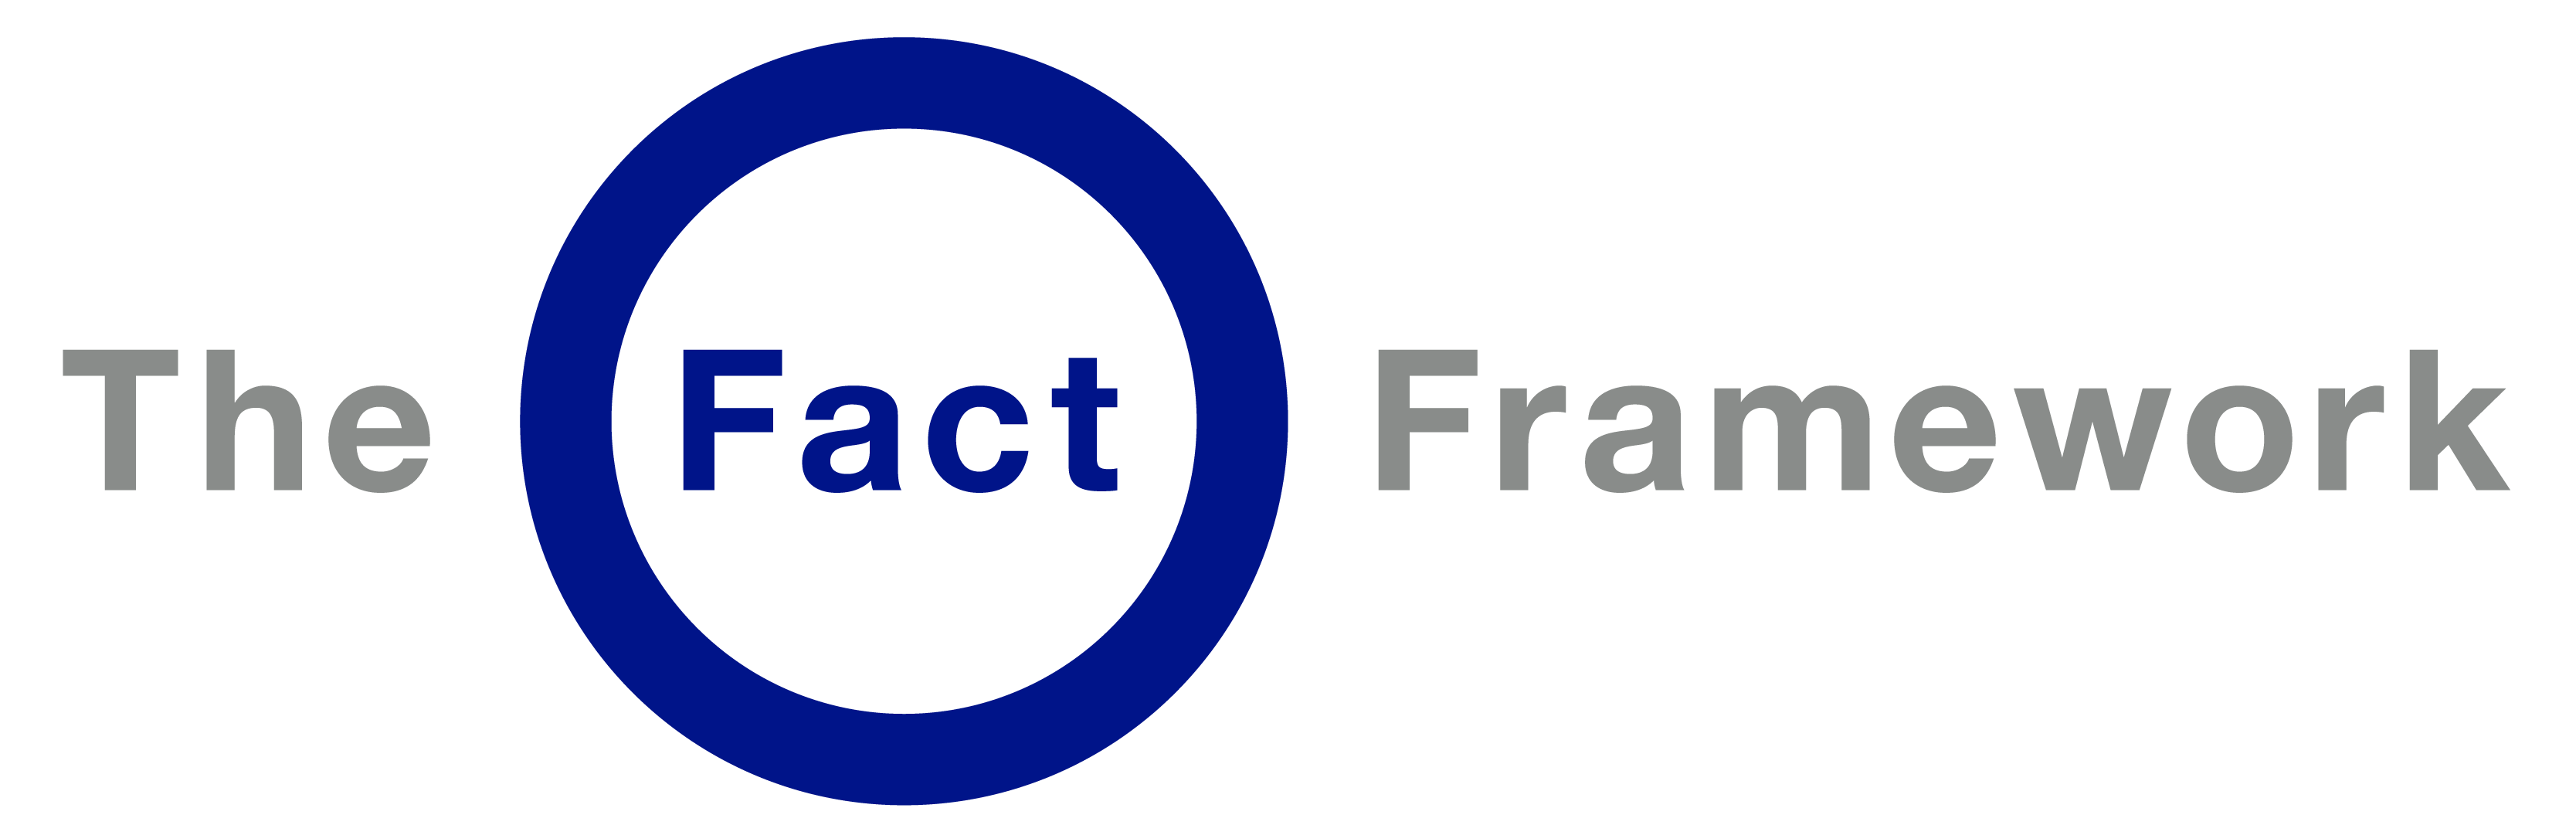 The Fact Framework logo